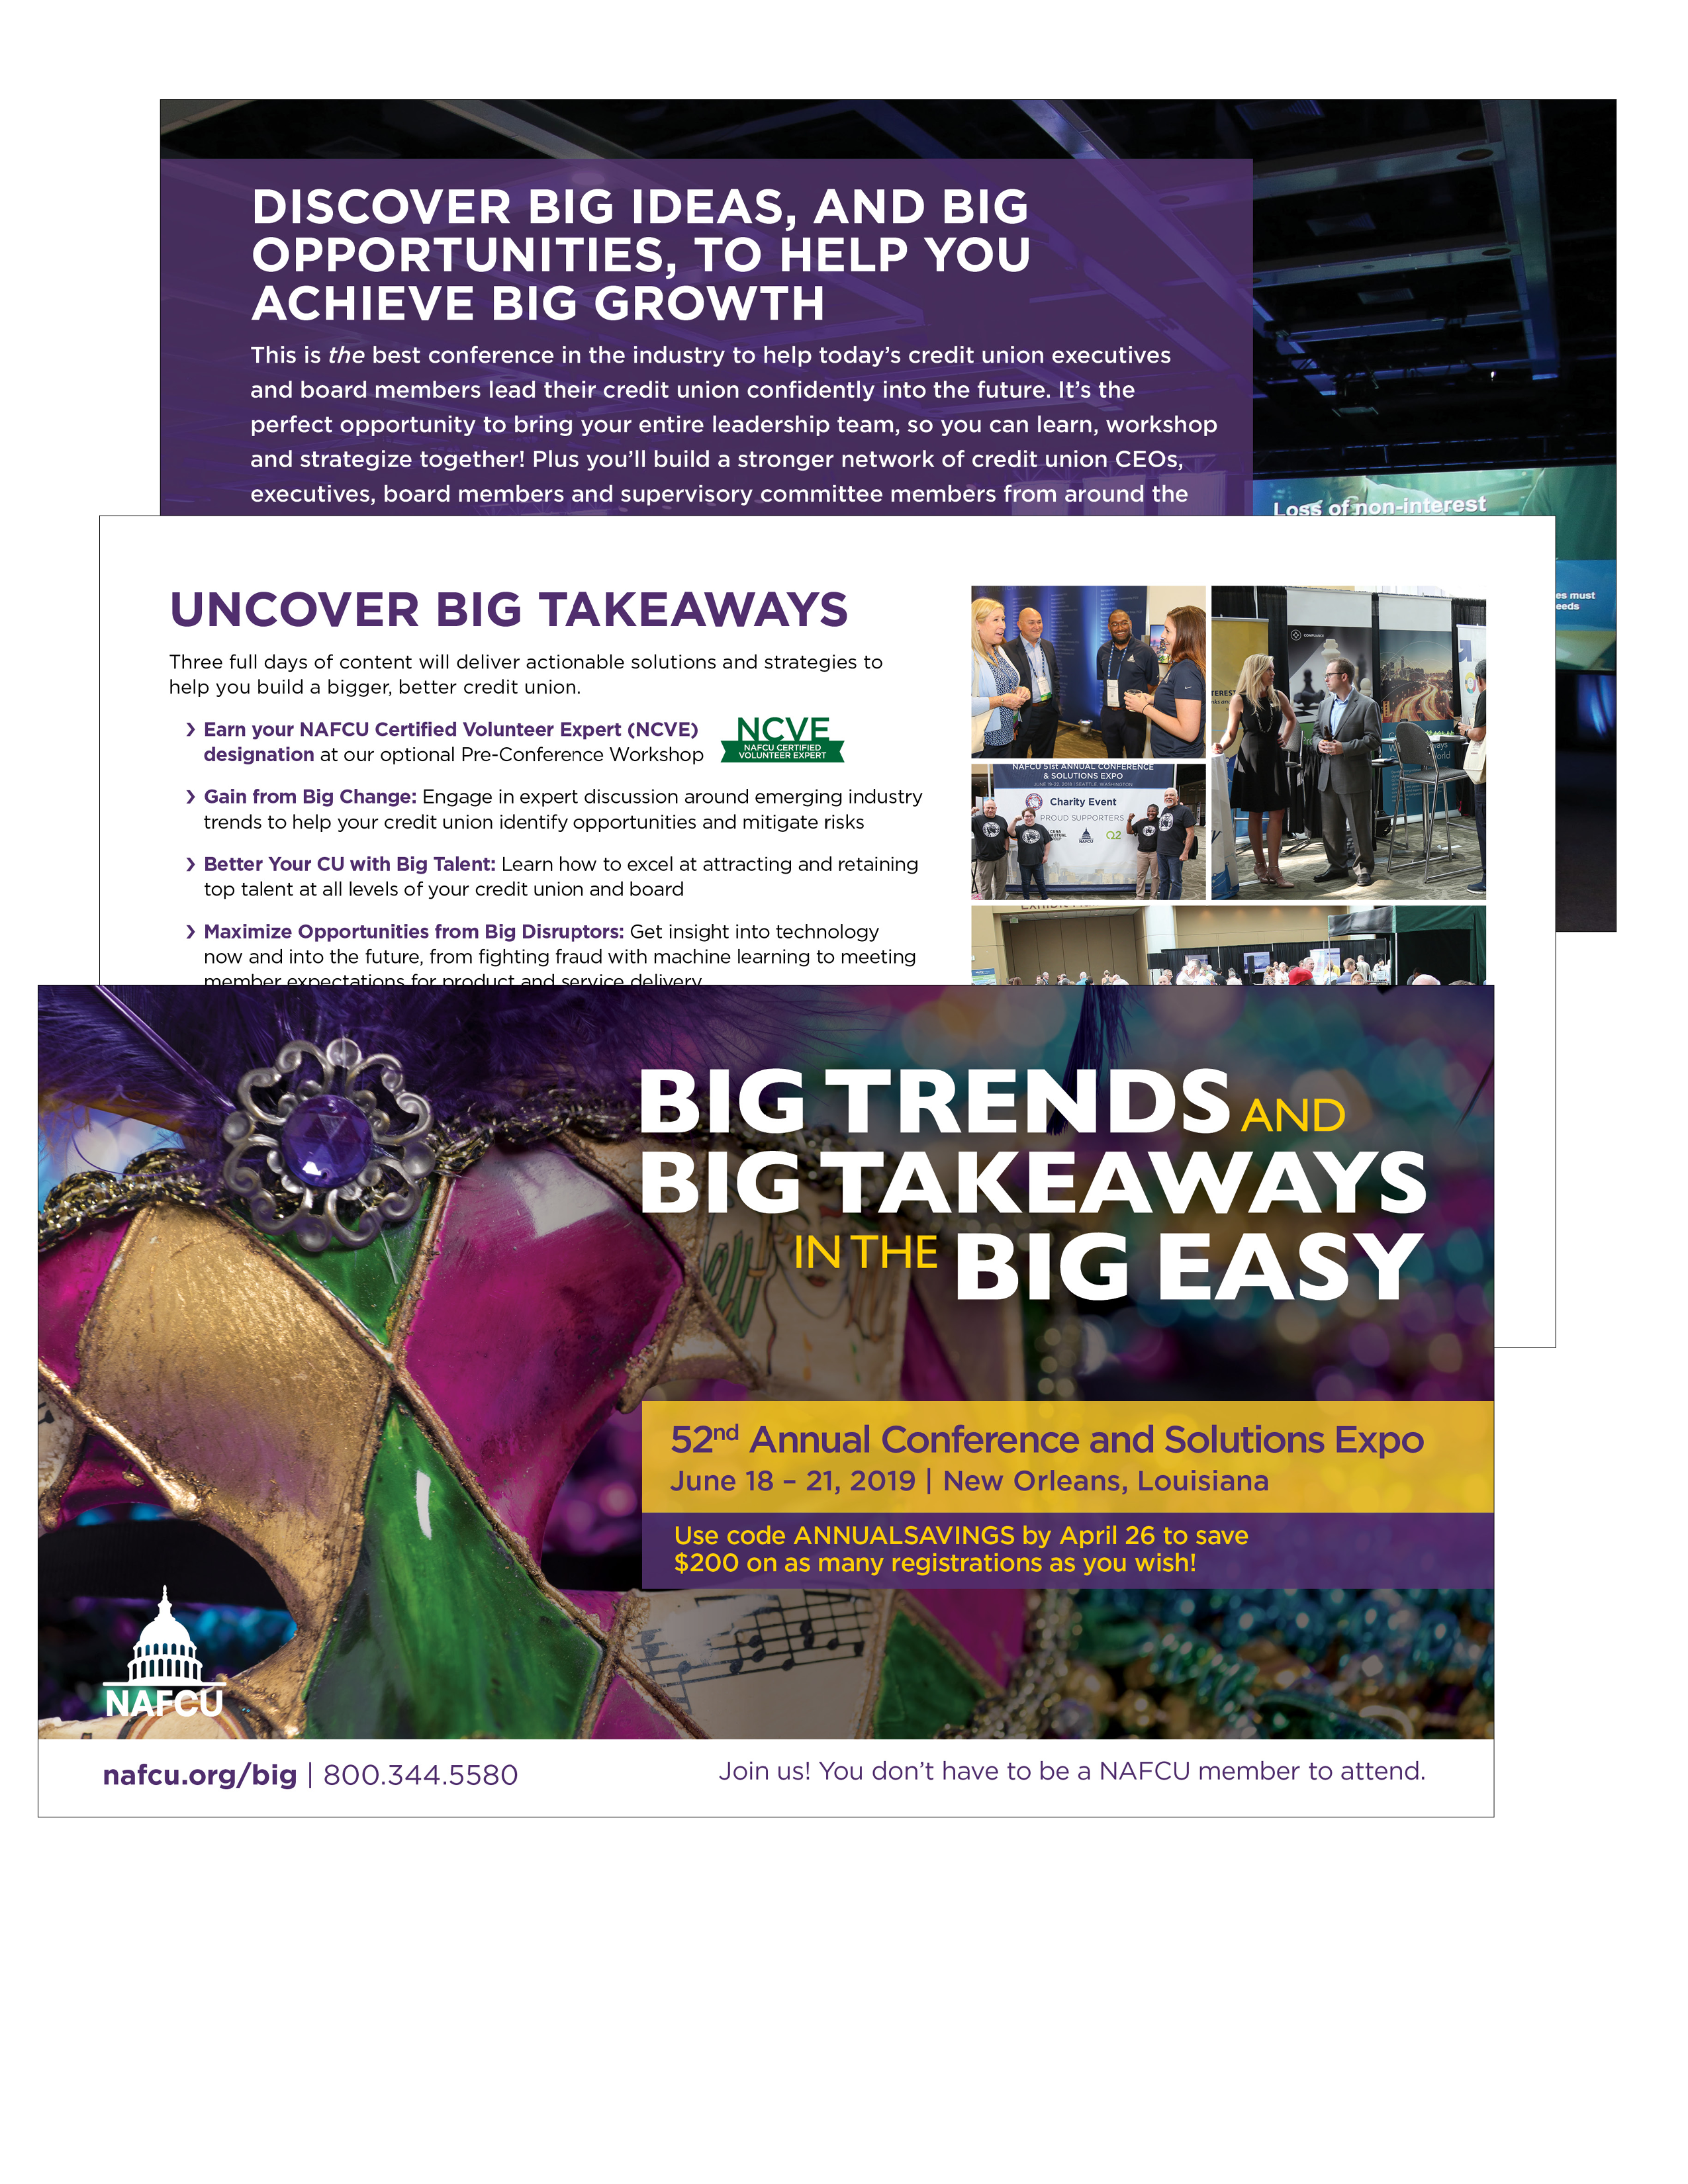 NAFCU 52nd Annual Conference and Solutions Expo Brochure